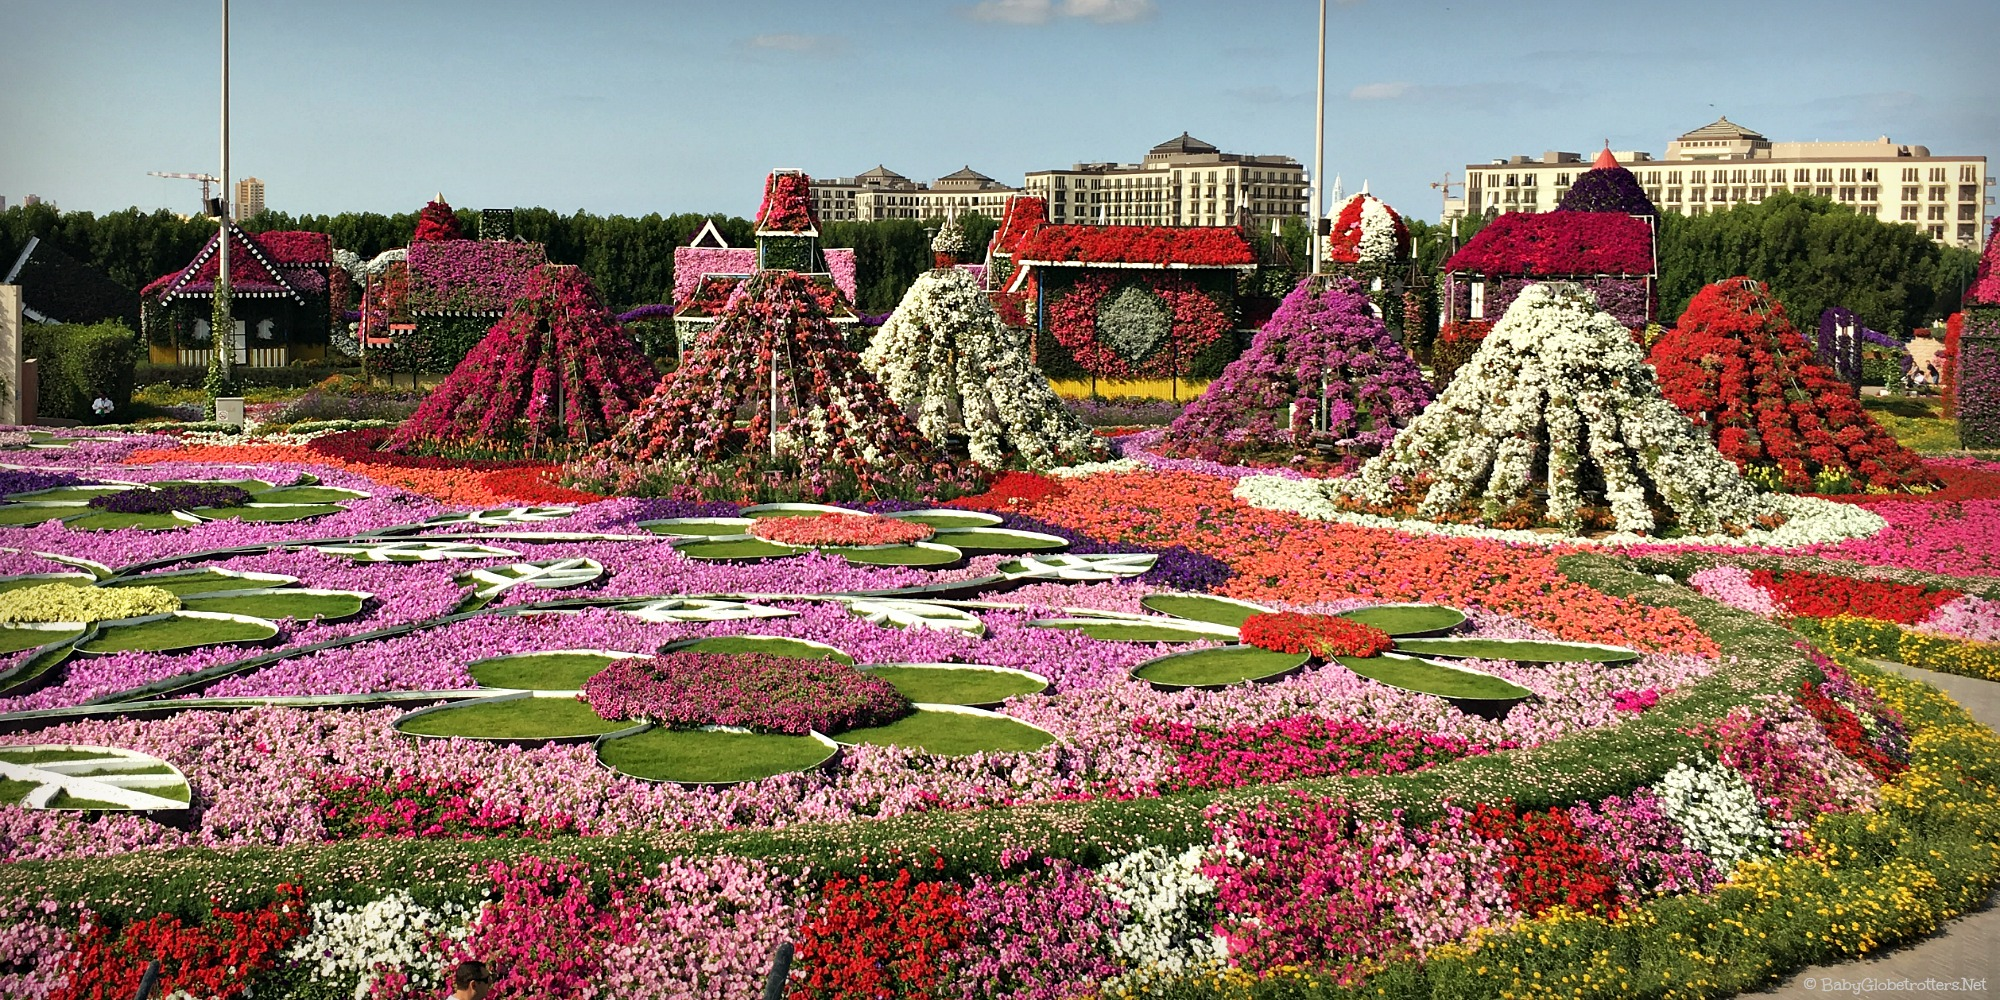 50 million blooms to wow visitors at dubai miracle garden - Dubai Miracle Garden